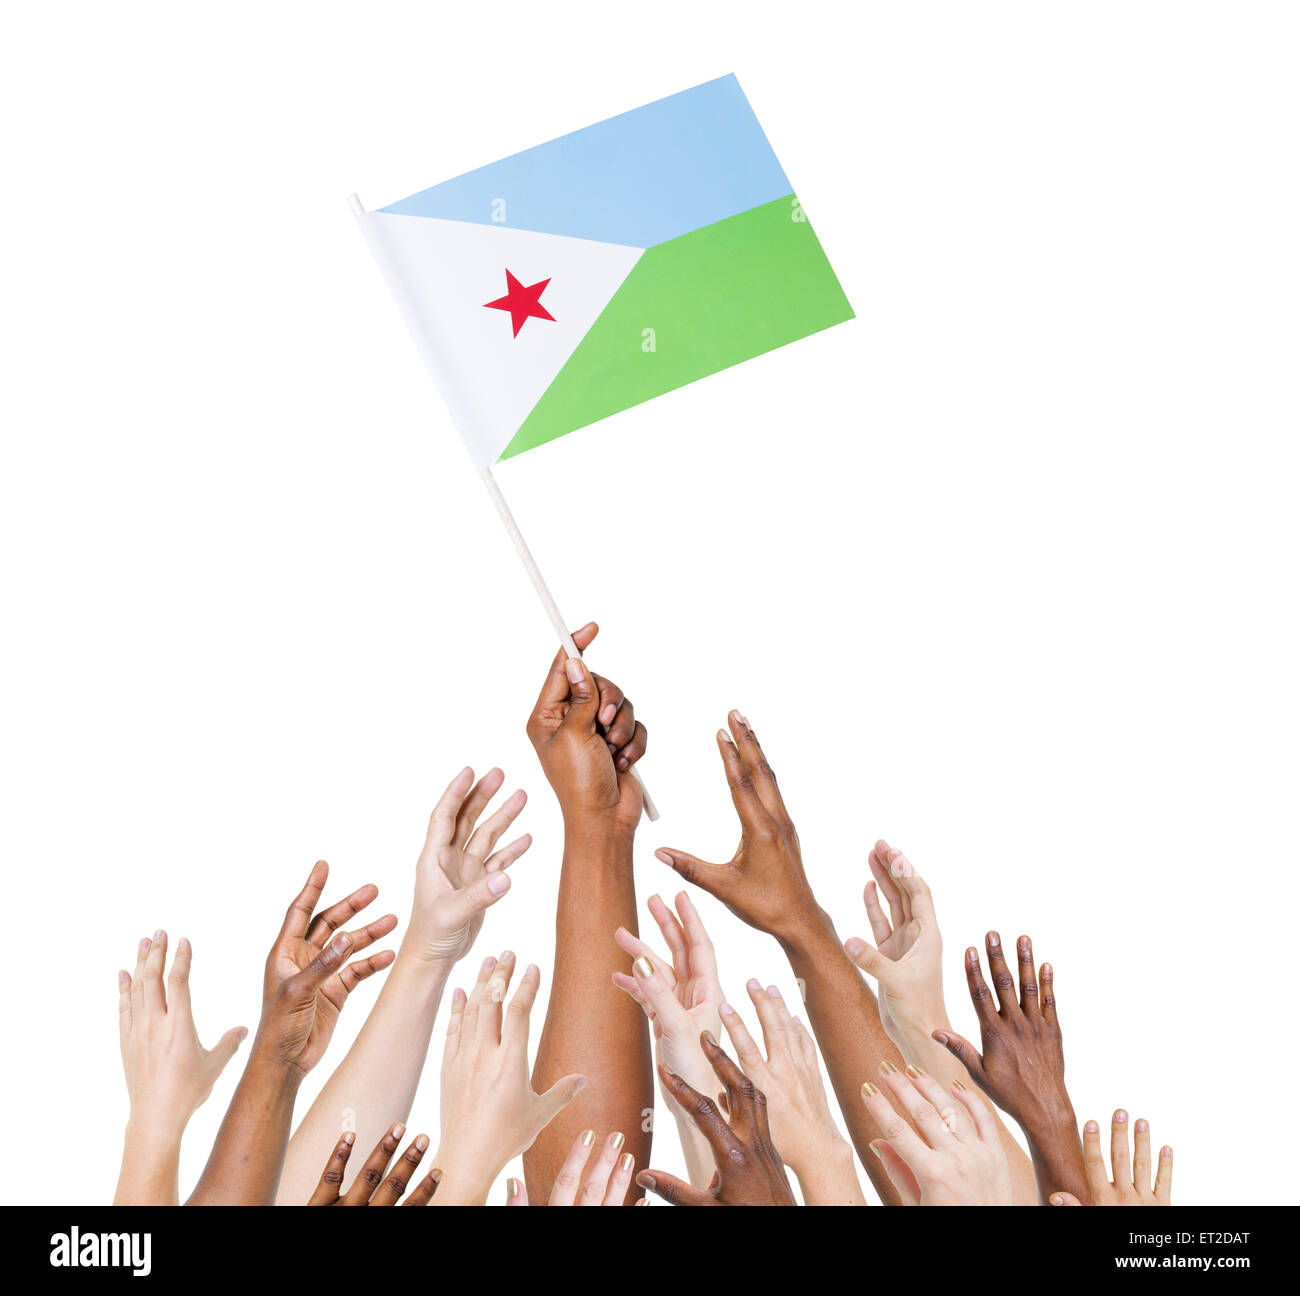 Group of multi-ethnic people reaching for and holding the flag of Djibouti. - Stock Image